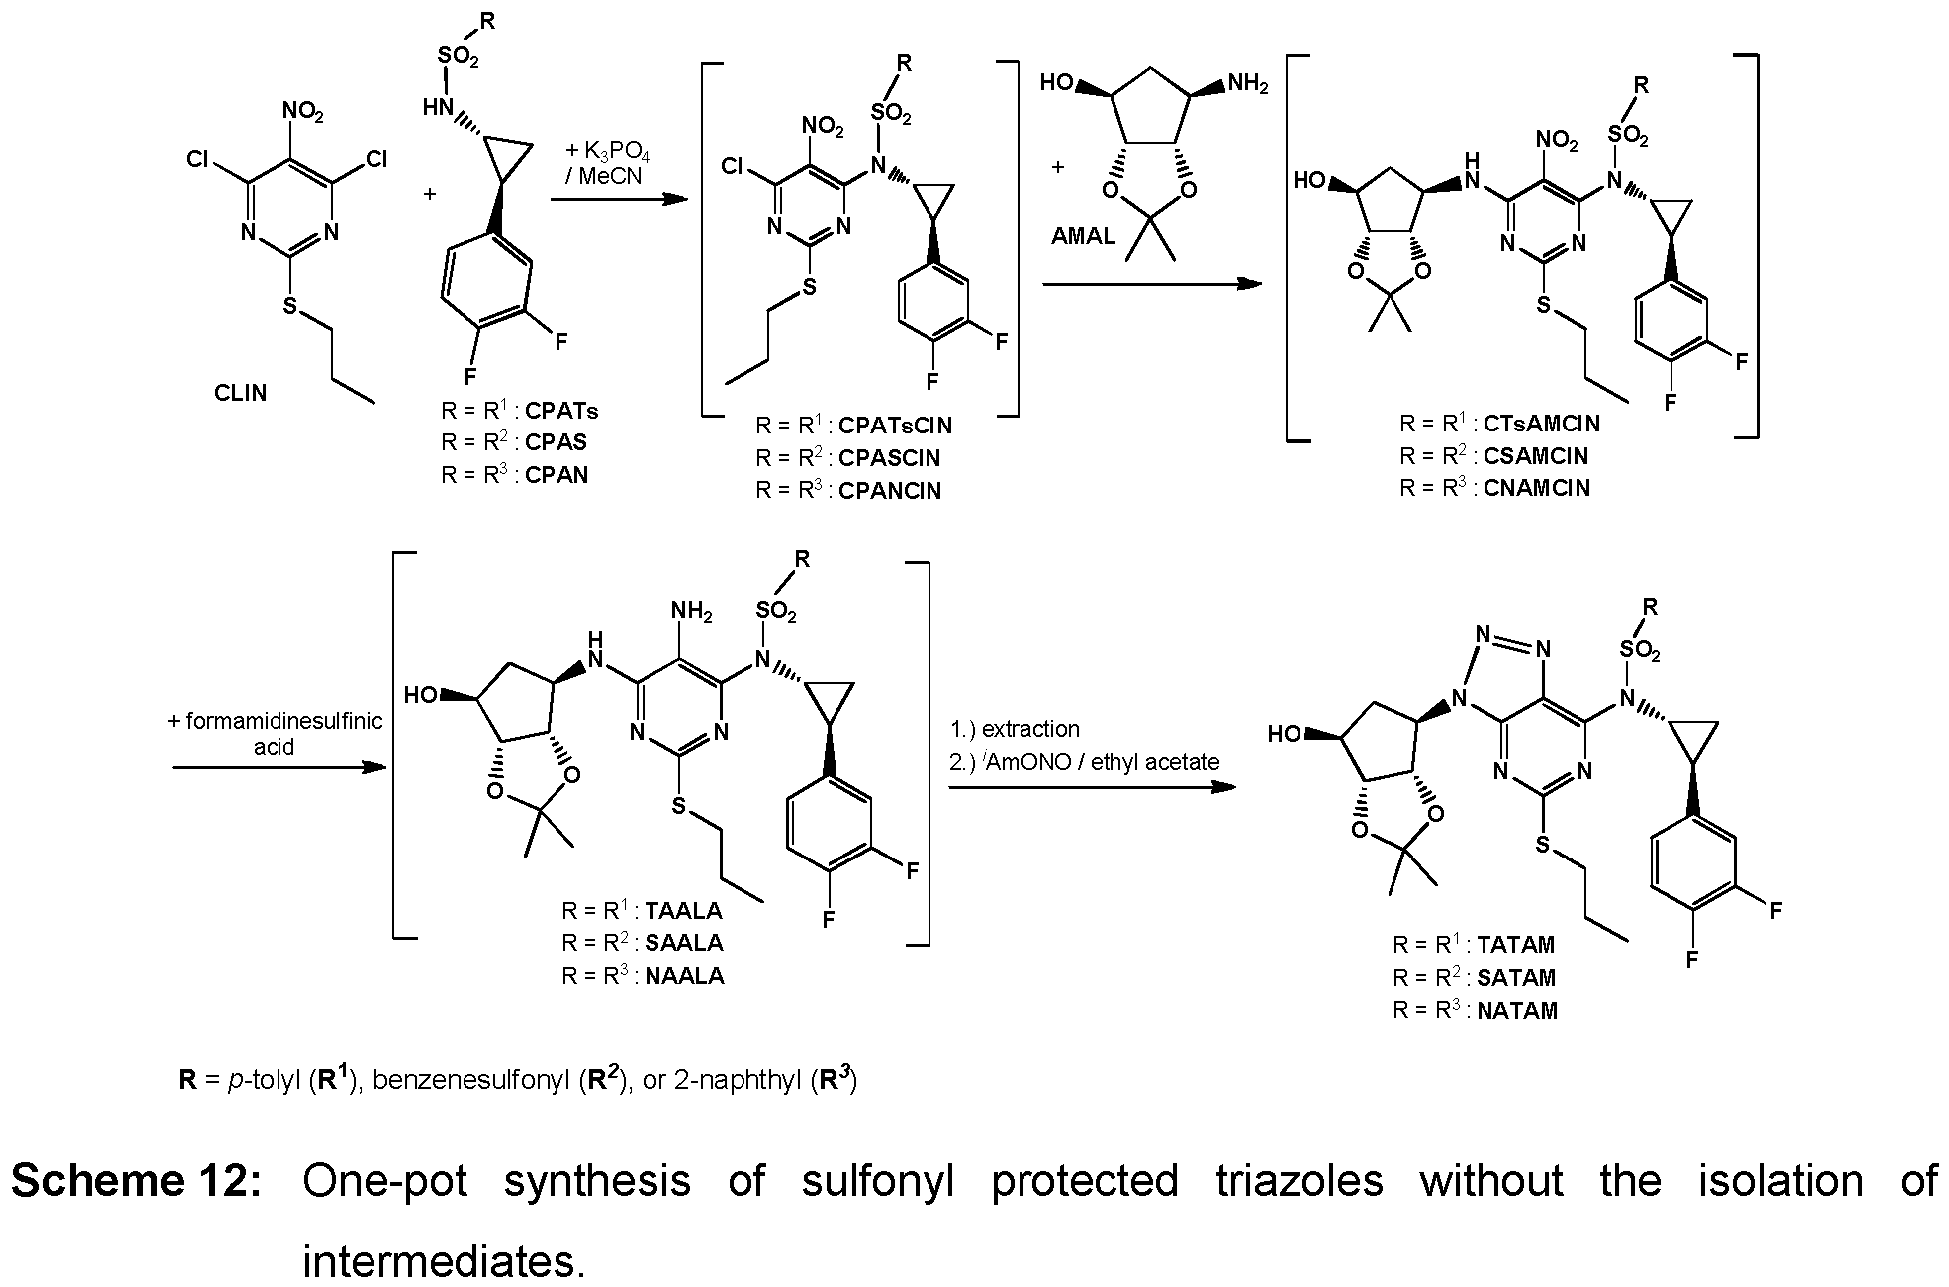 synthesis of tetraphenylcyclopentadienone Read this miscellaneous essay and over 88,000 other research documents multistep synthesis chemistry experiment multistep synthesis of tetraphenylcyclopentadienone in this laboratory experiment a synthesis was performed through several separate steps.